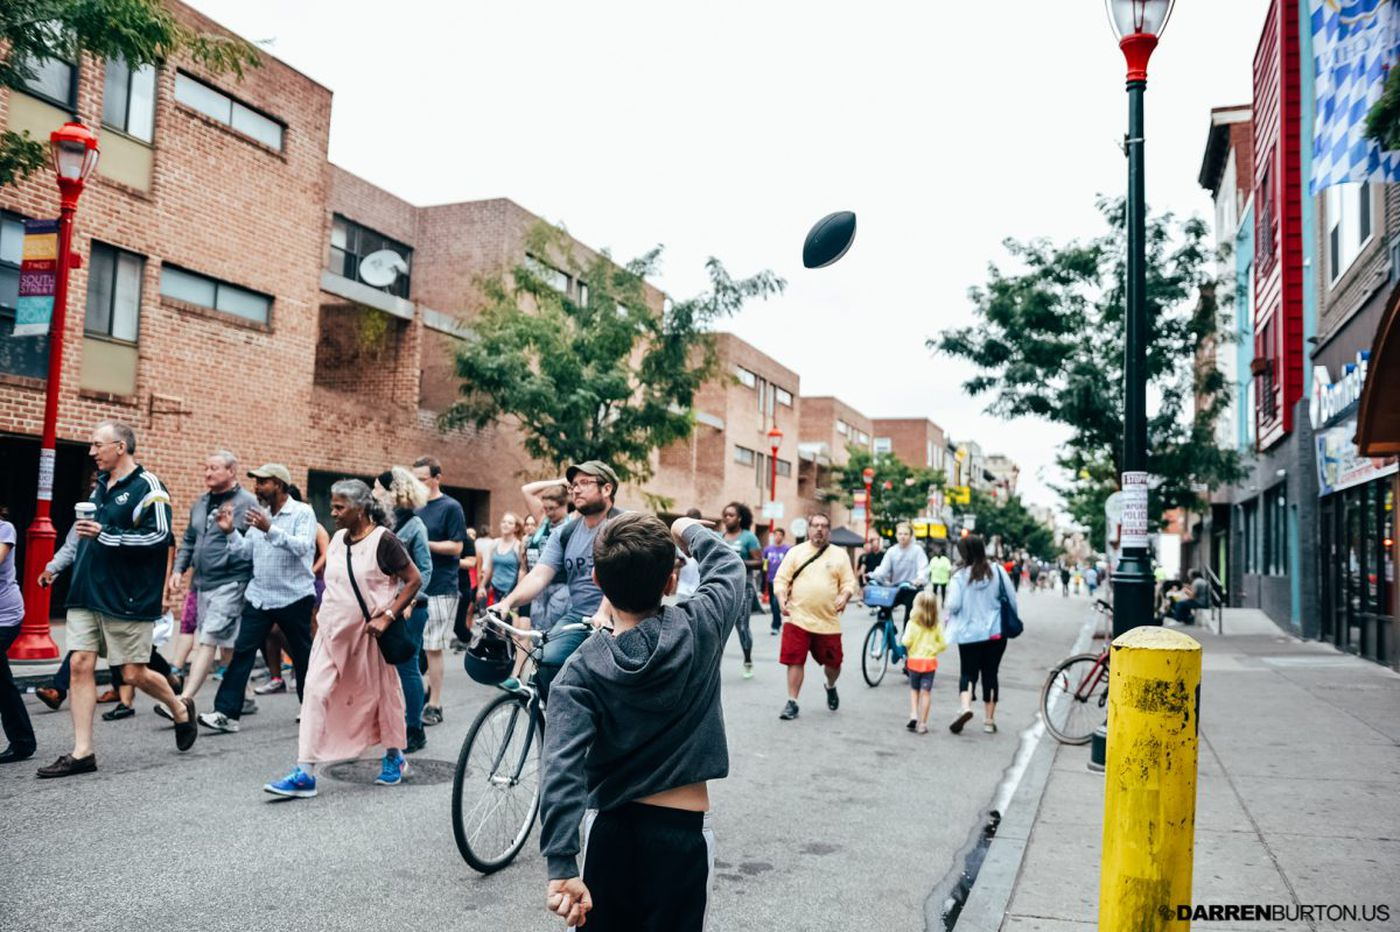 Pedestrians of Philly: Take to the streets!